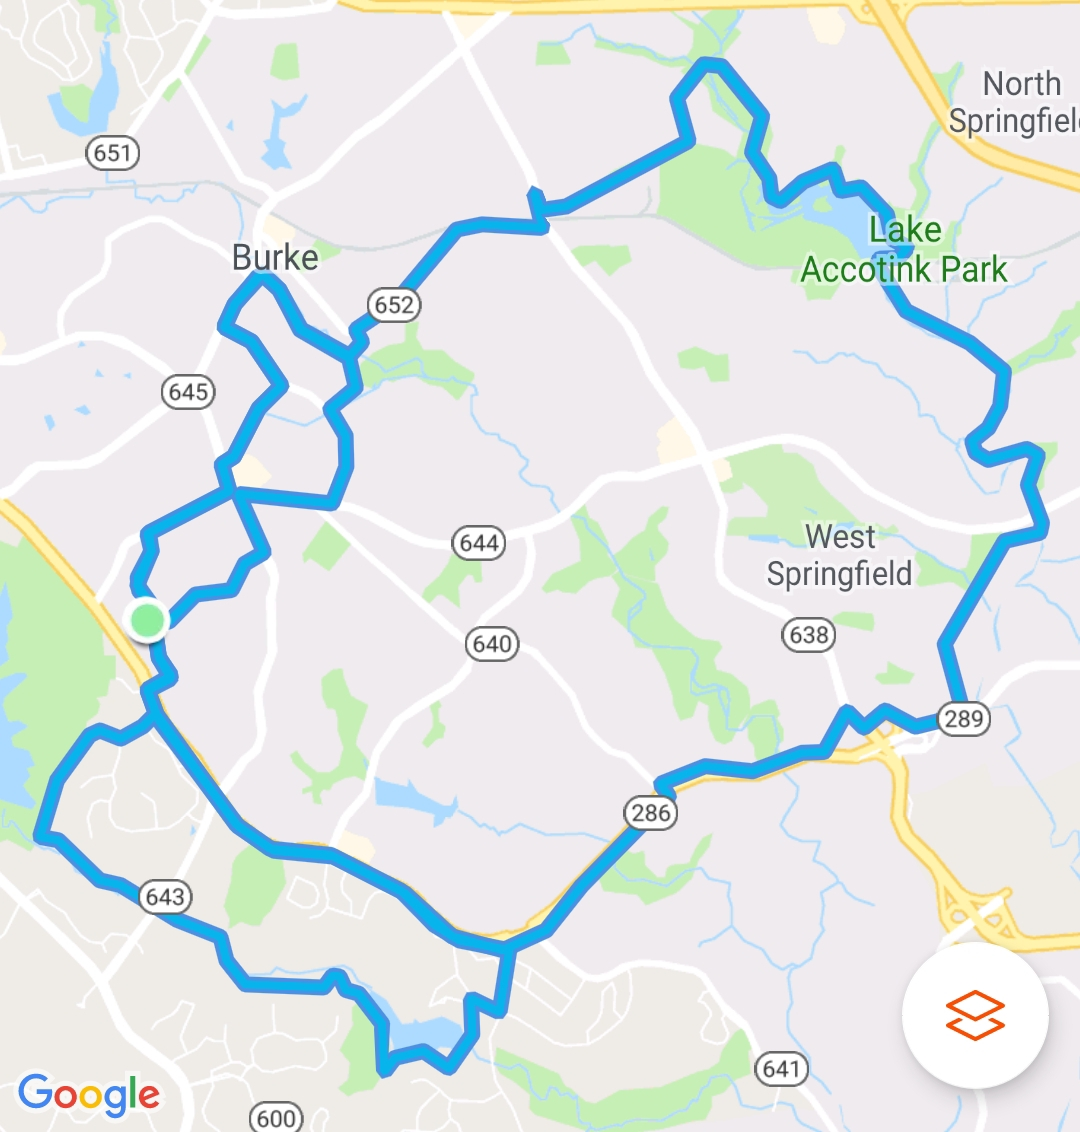 join fabb for a family friendly beginner ride on the day after bike your park day that has 5 mile starter loop 7 mile advanced starter loop 16 3 mile